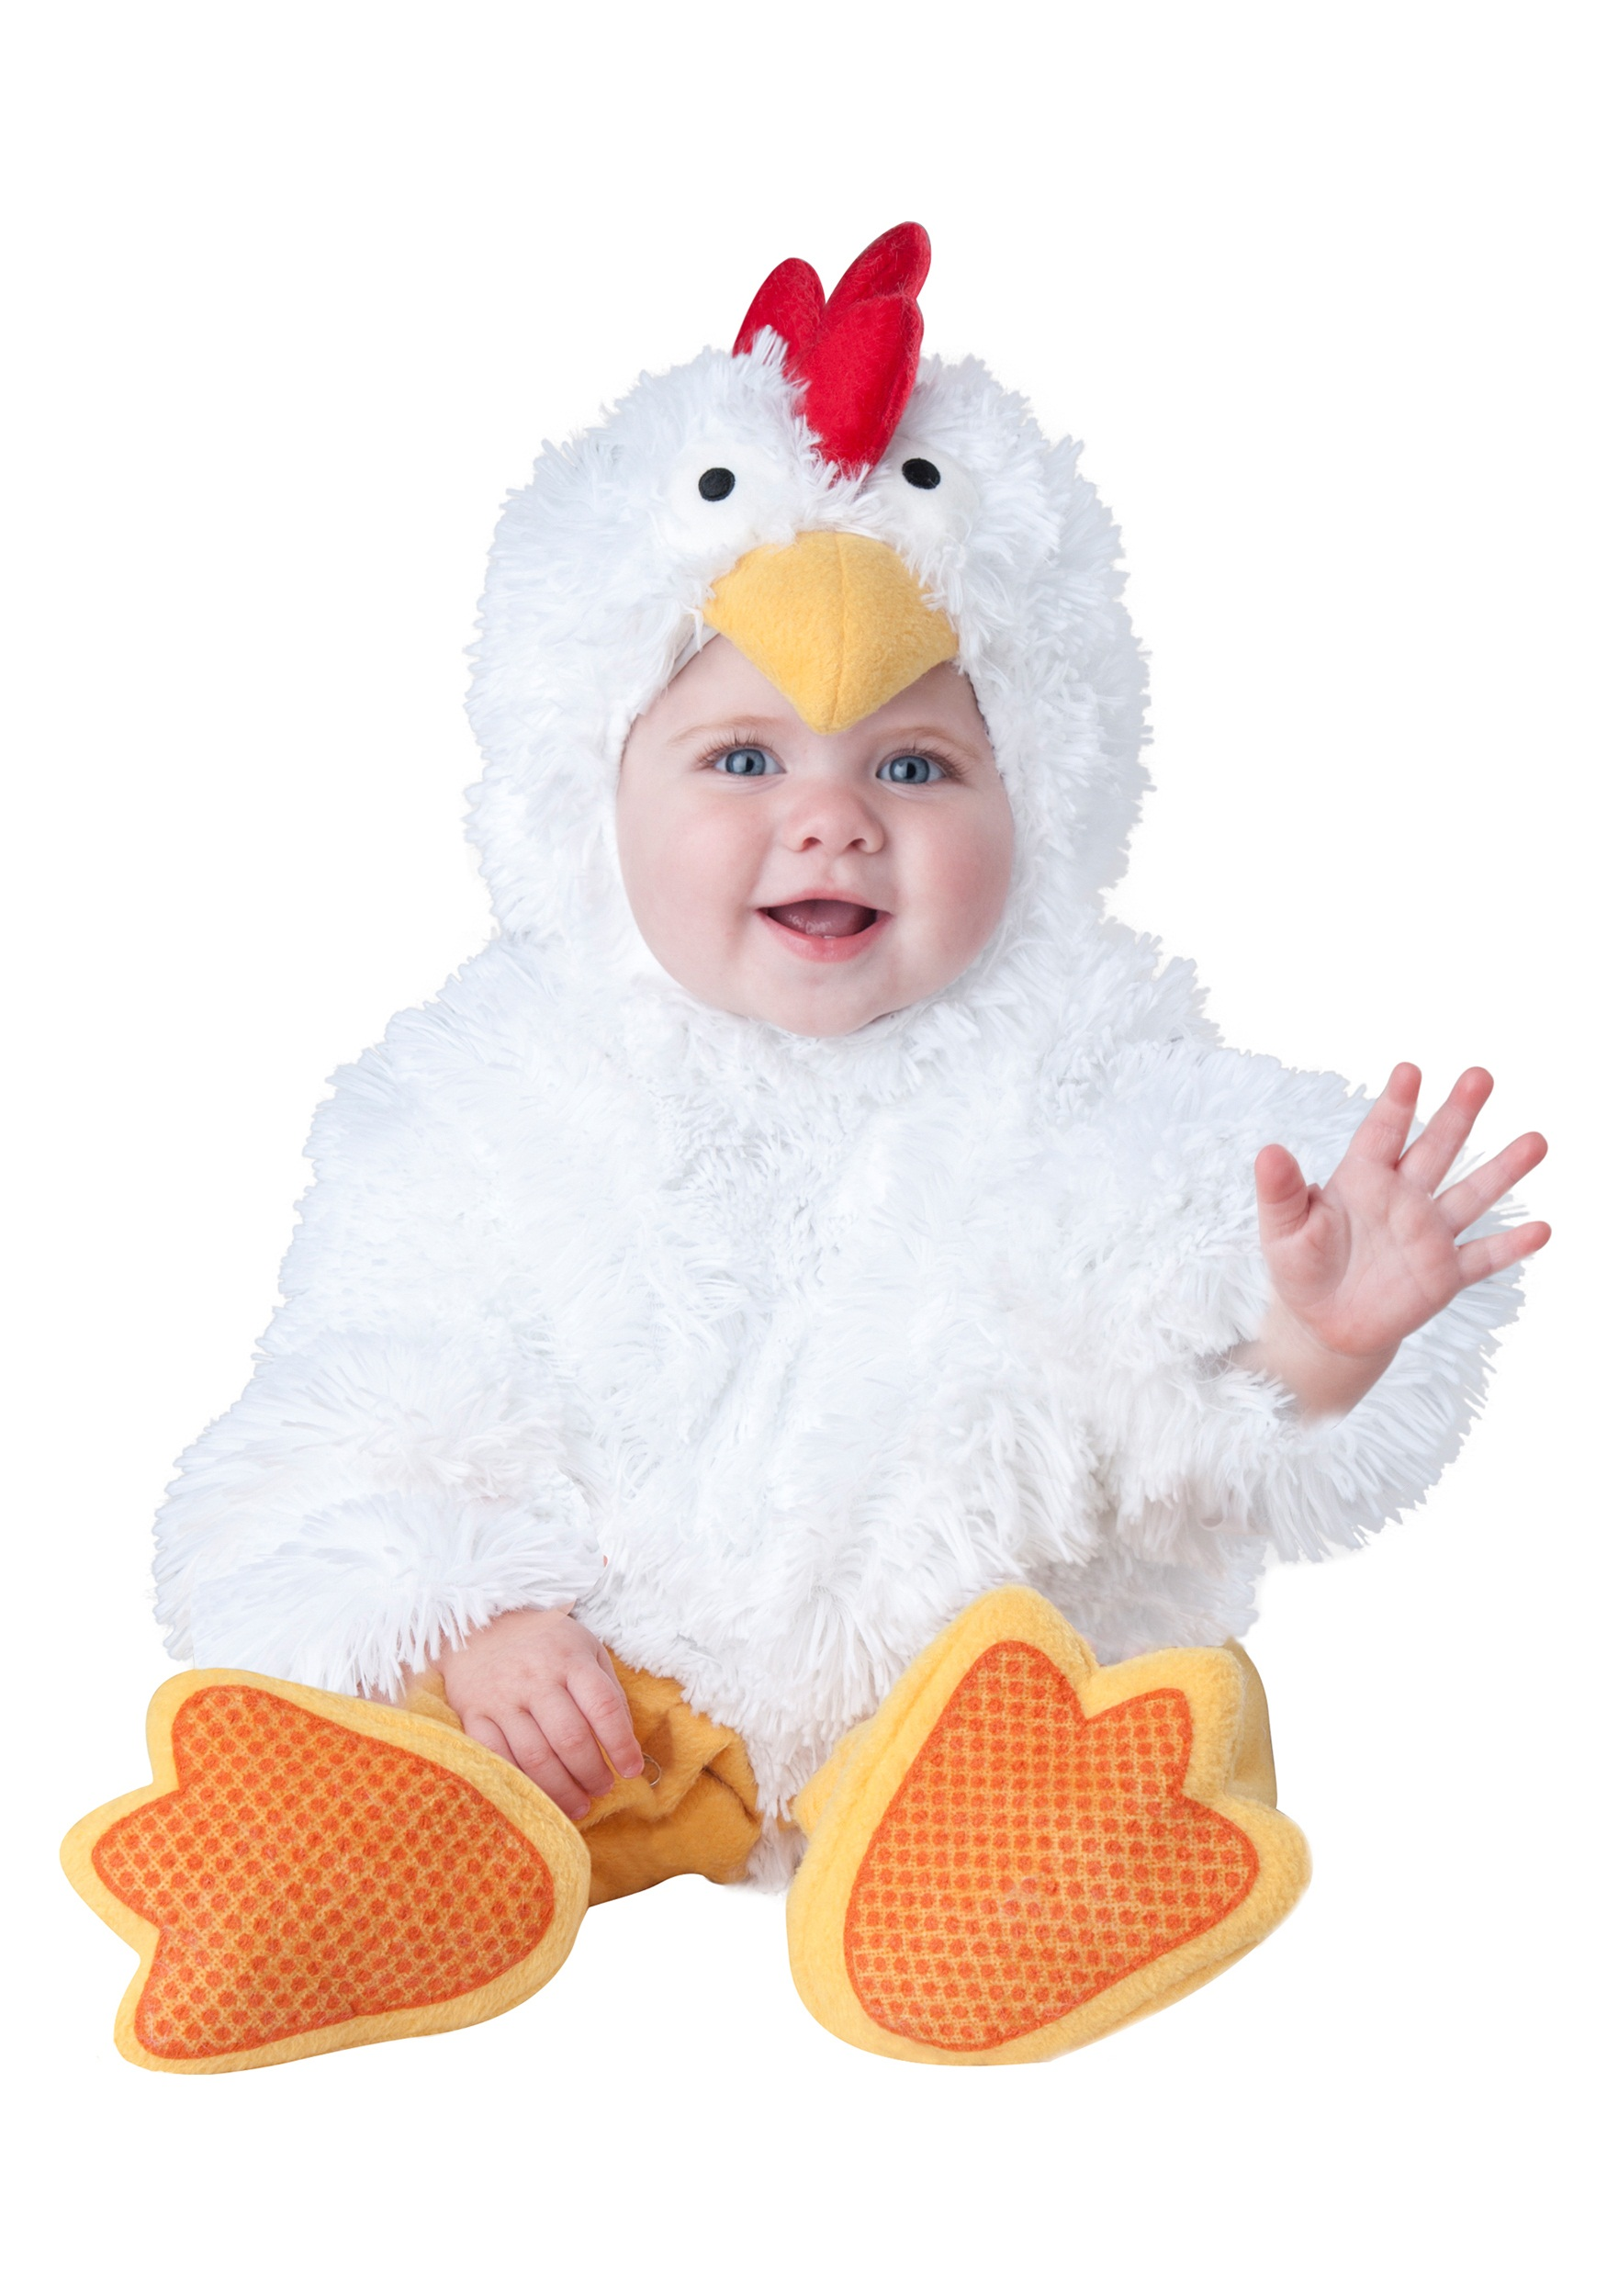 Cluckinu0027 Cutie Infant Costume  sc 1 st  Halloween Costumes & Cluckinu0027 Cutie Infant Costume - Halloween Costumes